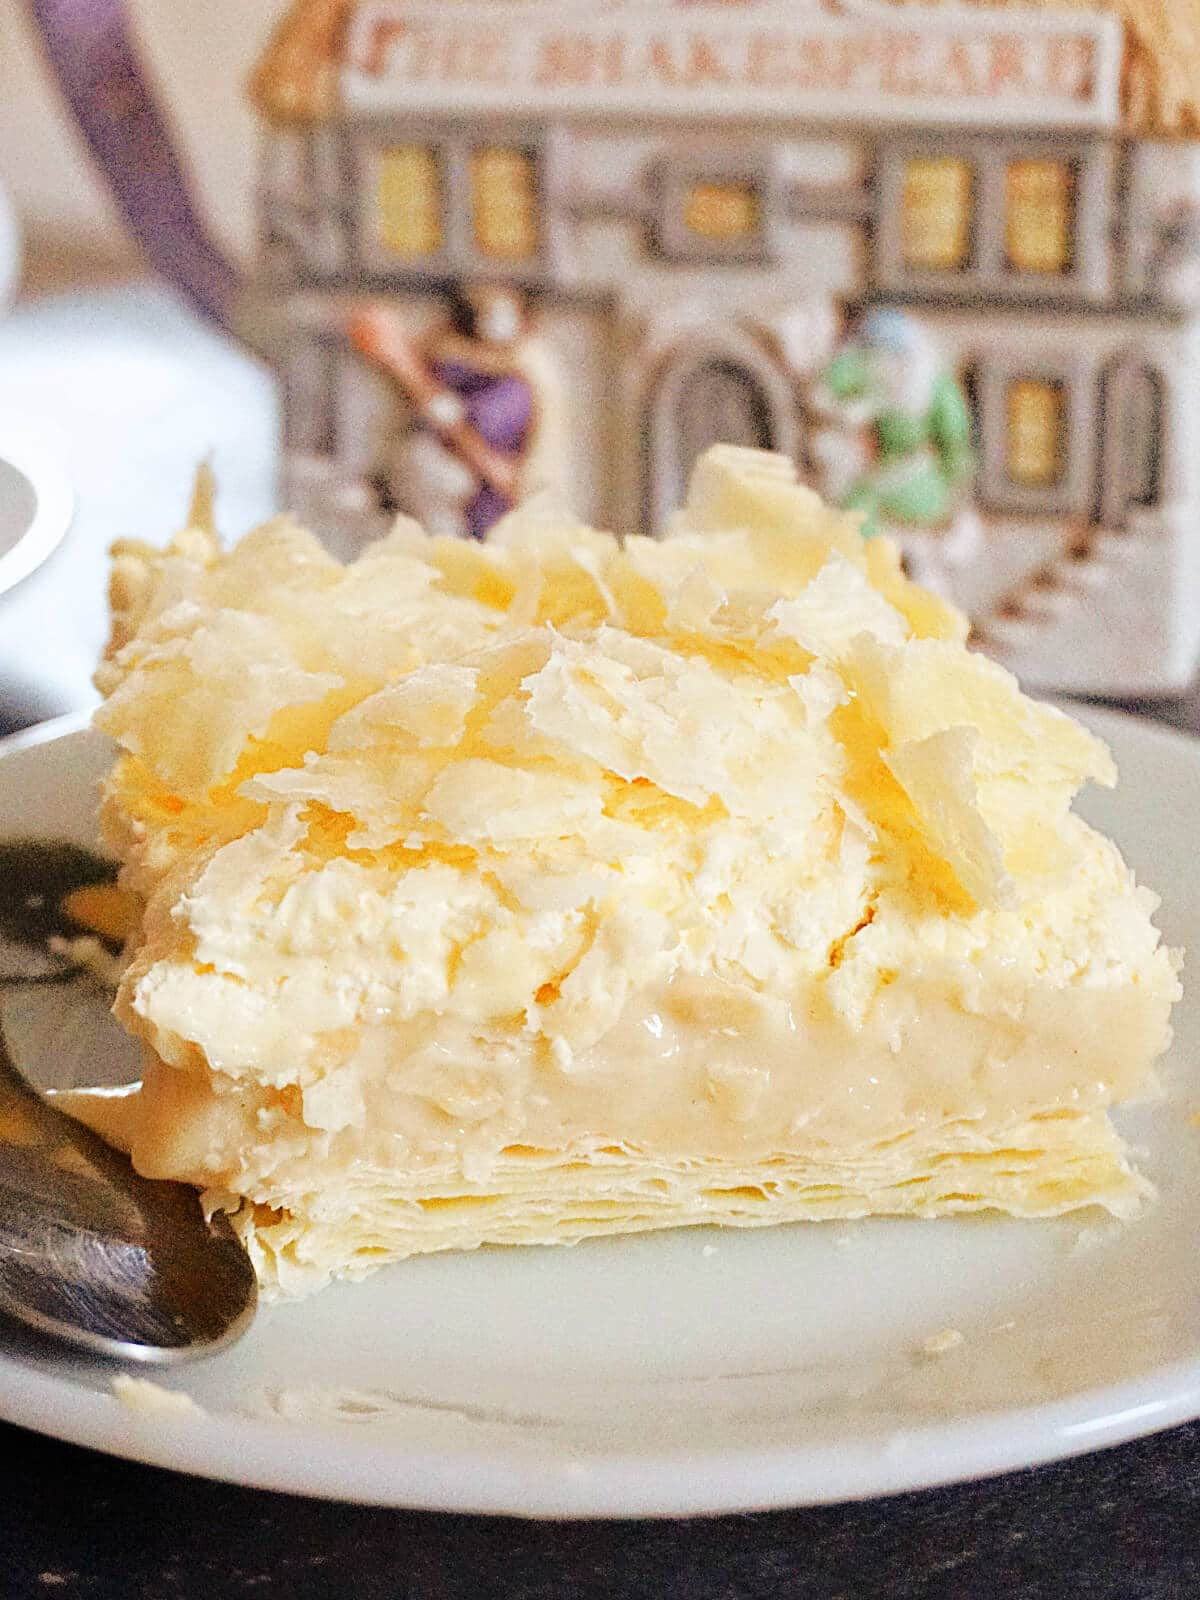 A slice of cremeschnitte on a white plate